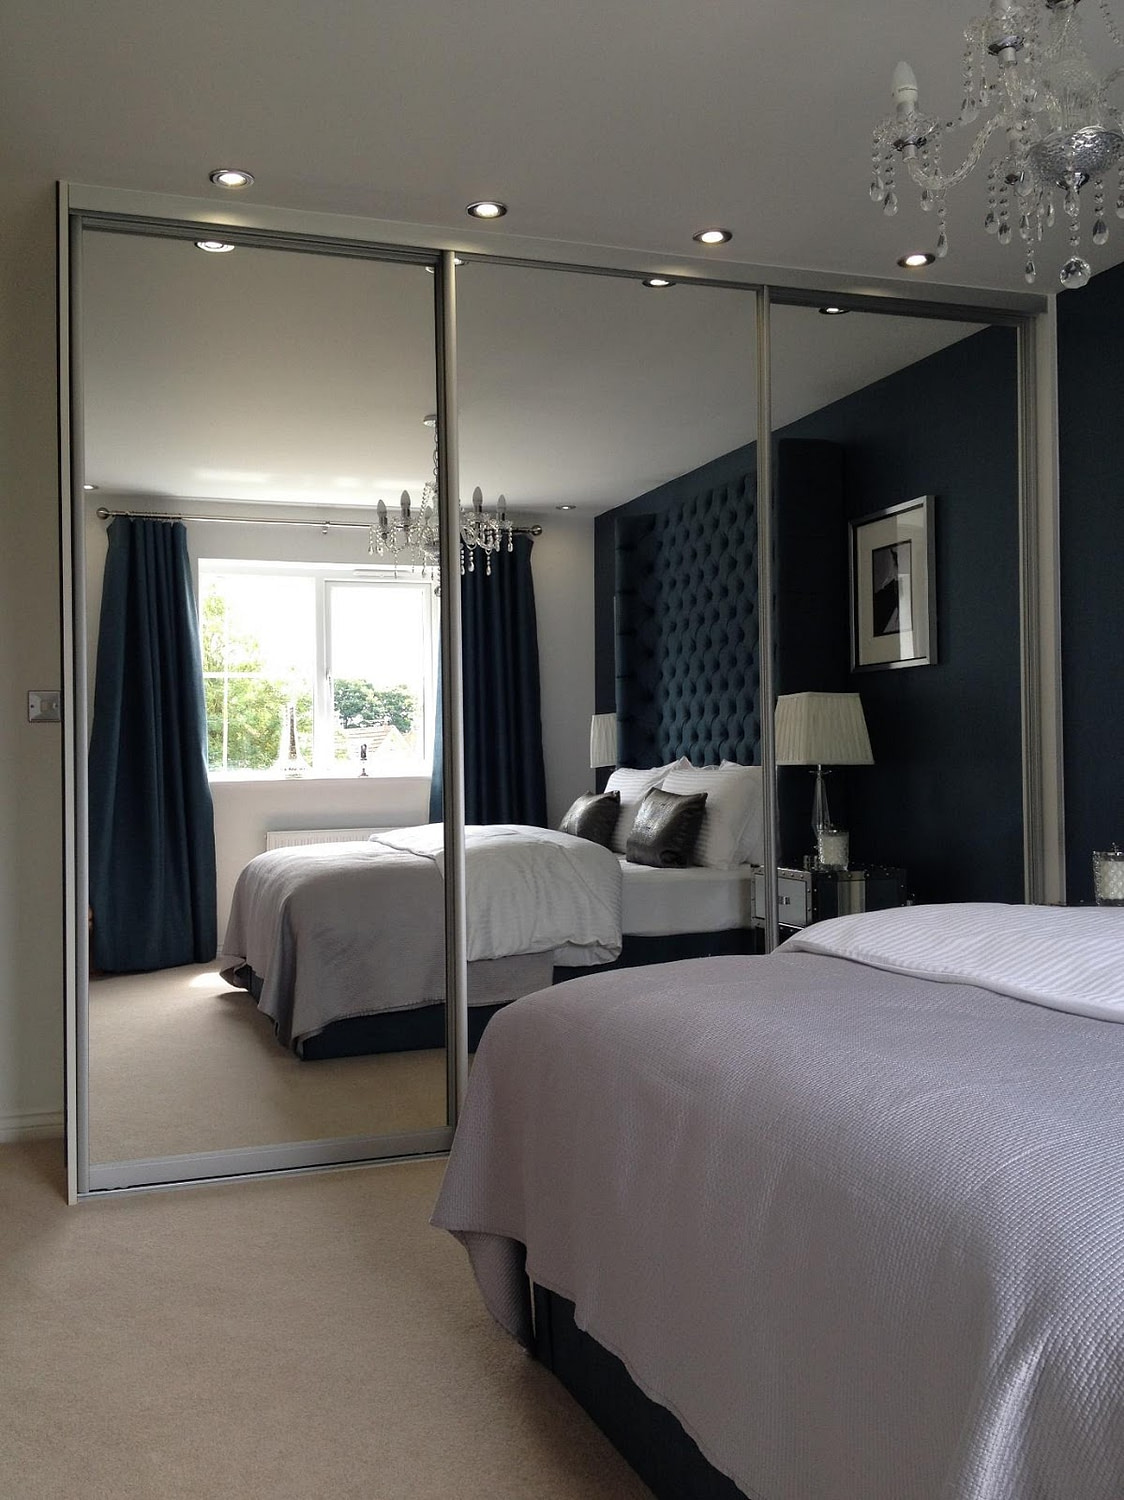 How much do mirrored sliding wardrobes for the bedroom cost